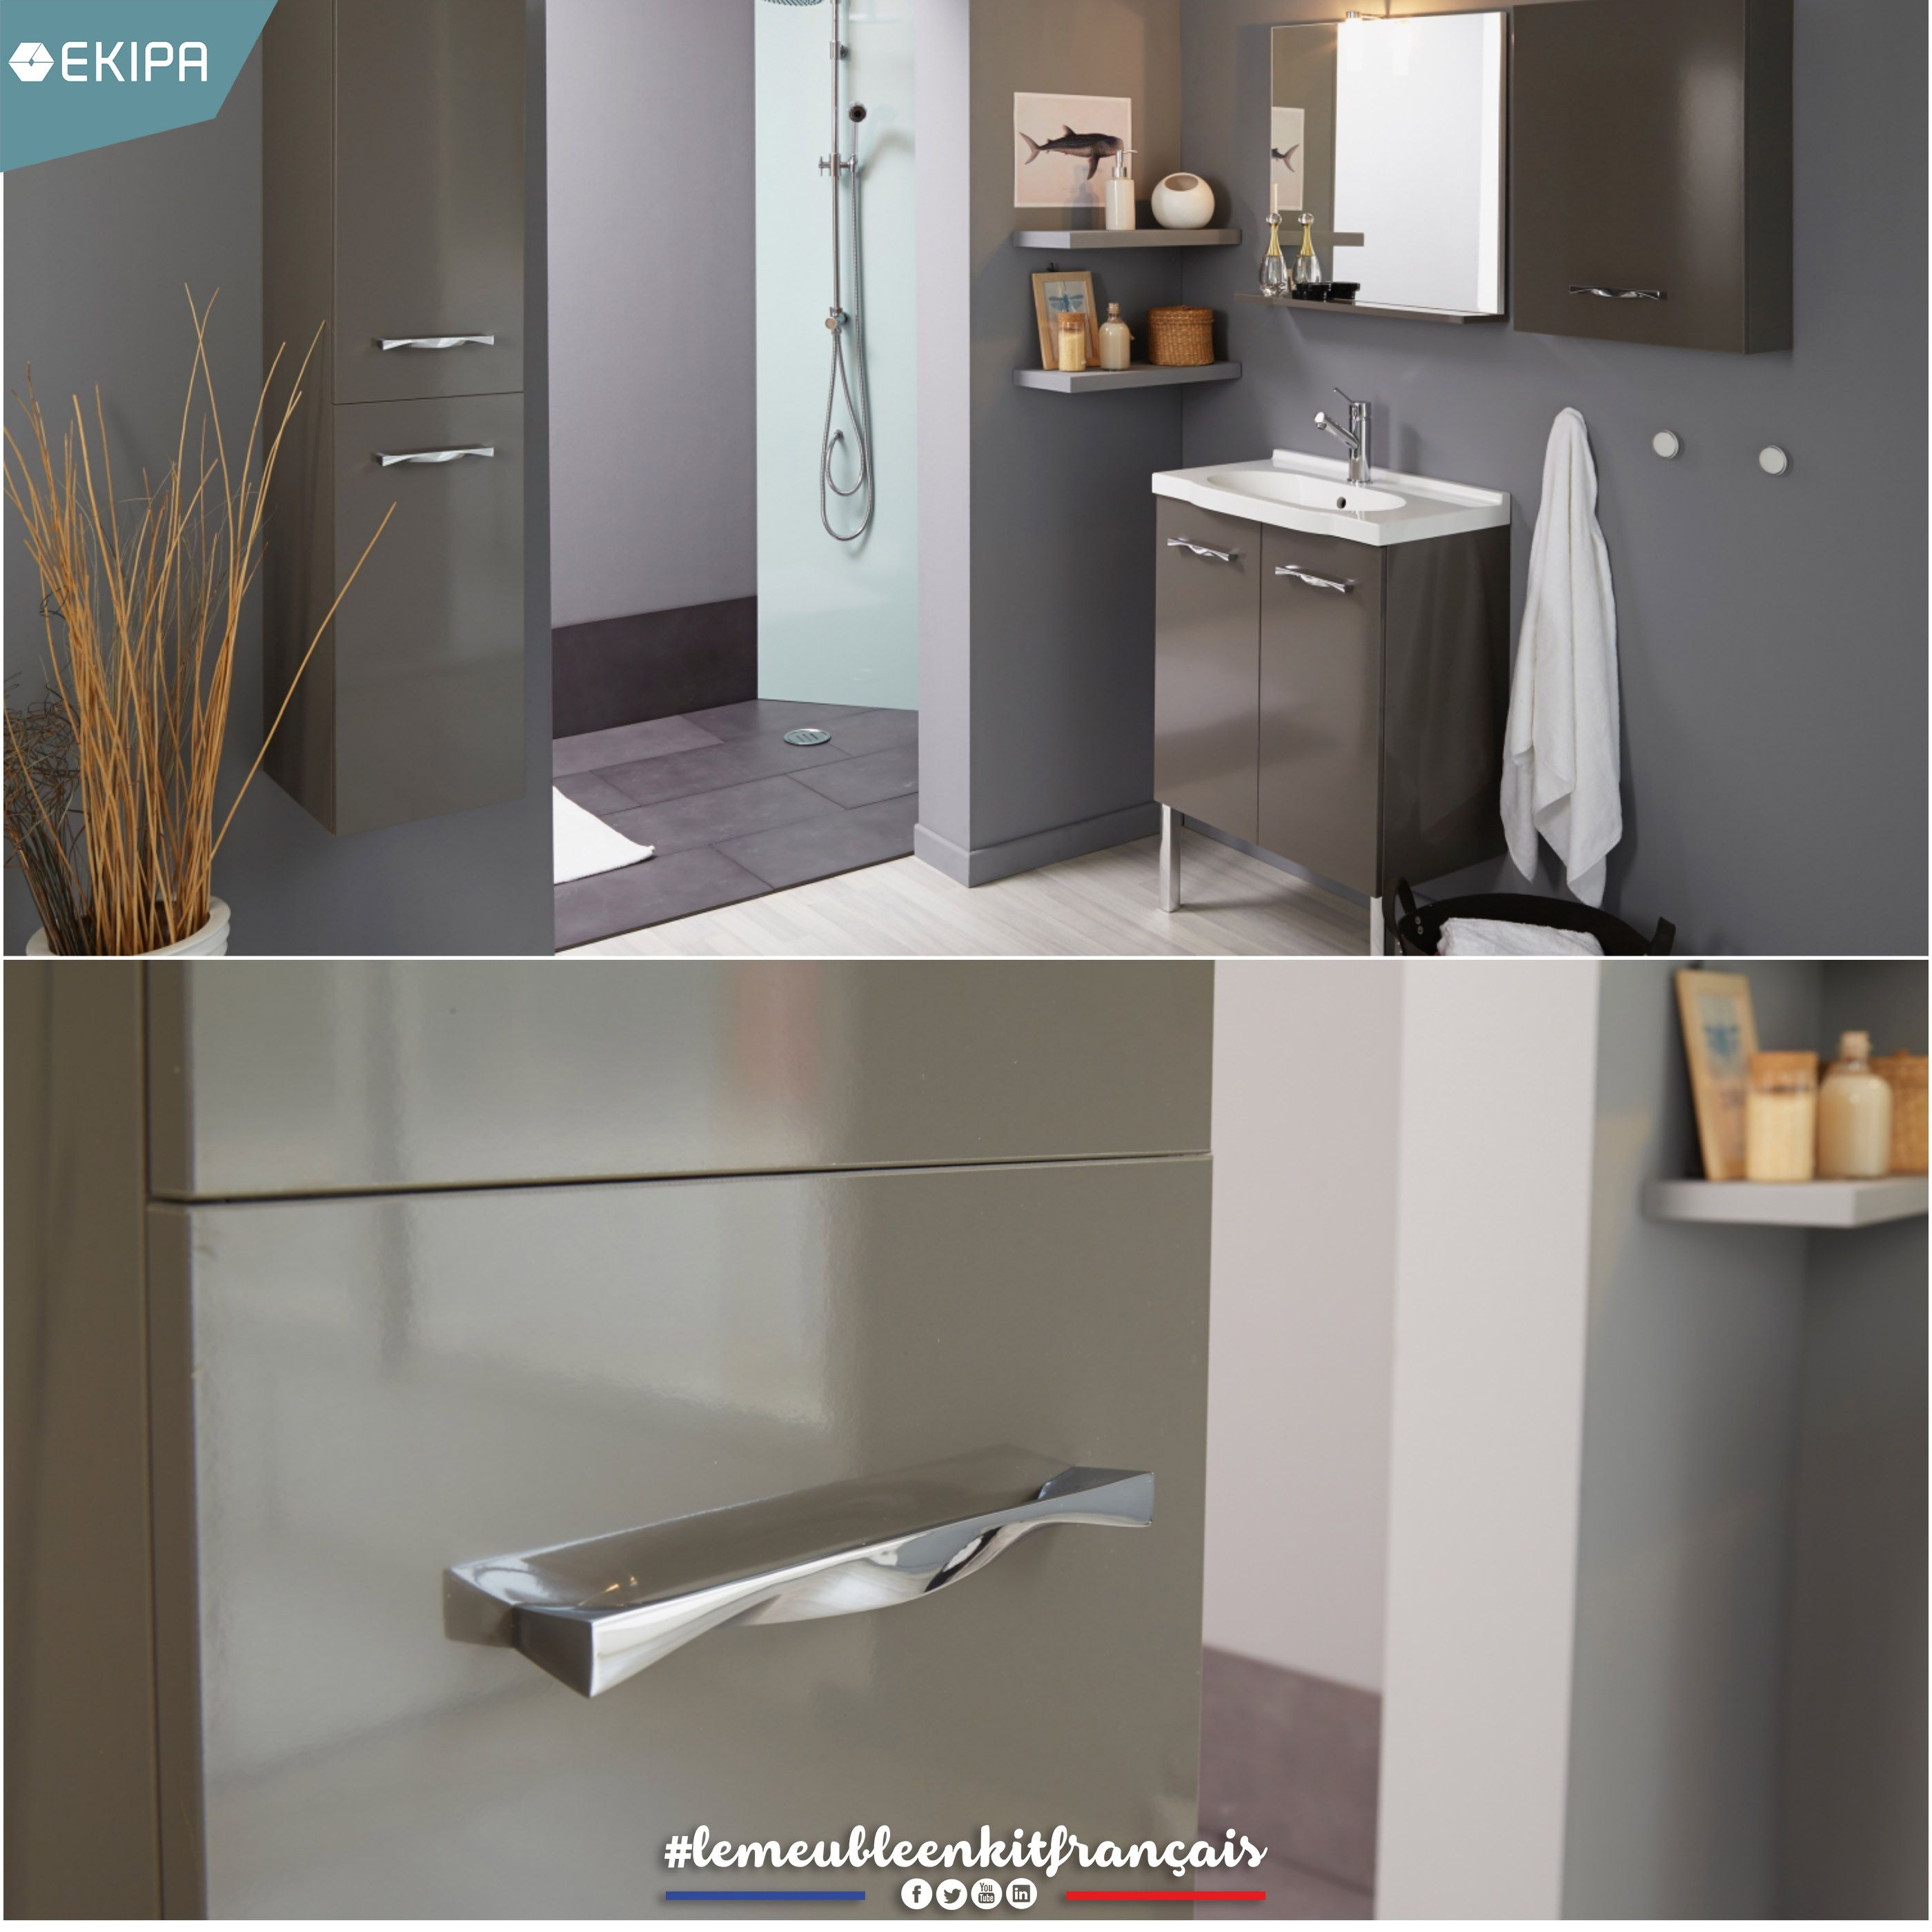 Colonne Salle De Bain Blanc Laque Cdiscount ~ dana by ekipa dana is a contemporary collection of bathroom